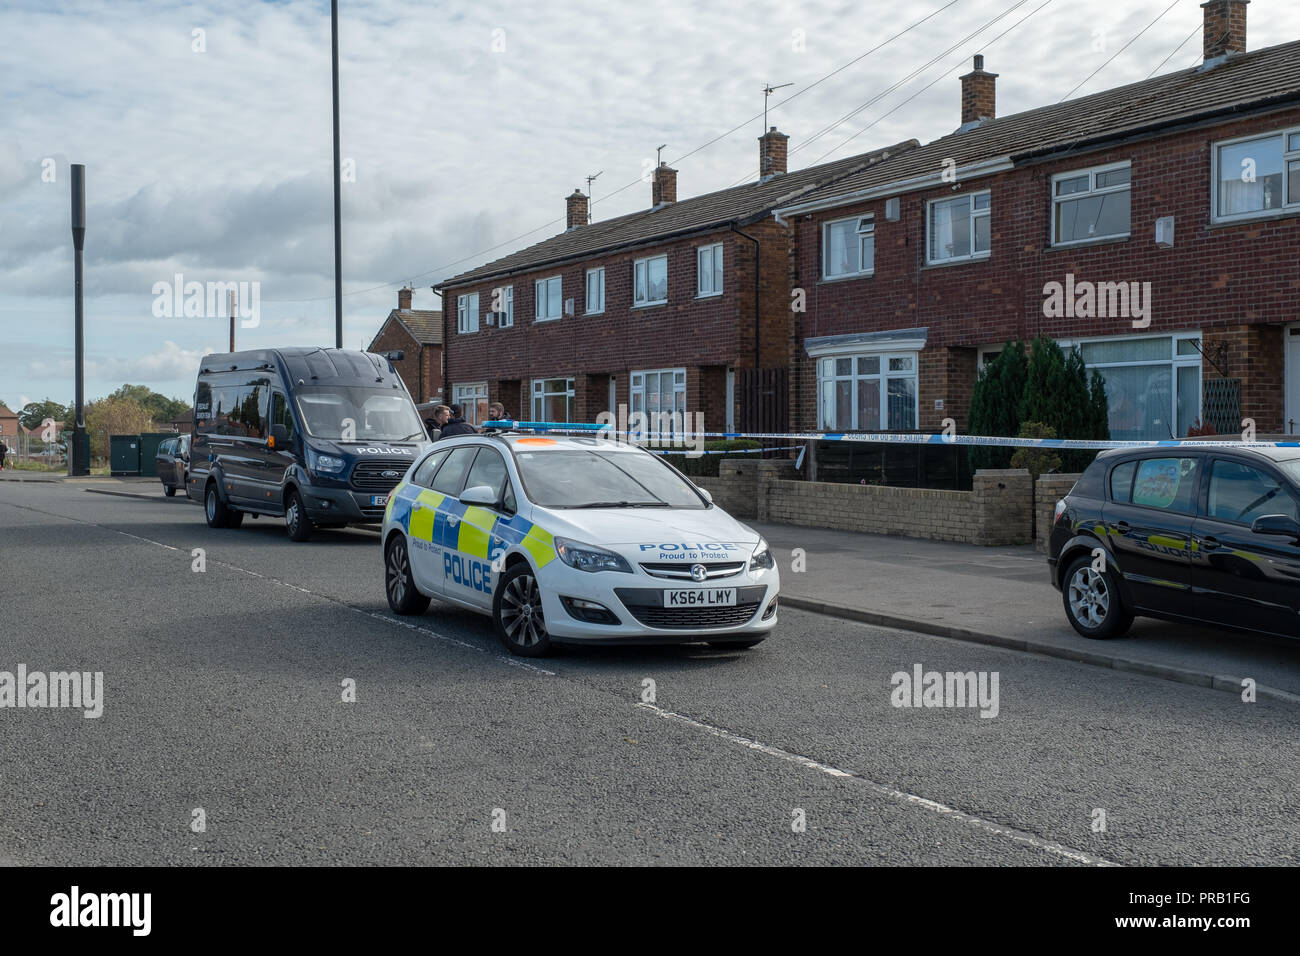 Sunderland Home Sealed off by Police - People reported hearing a loud bang on what is now suspected as gun shots in the street (Fordfield Road, Sunderland) and armed offices attended the incident last night (30 September at around midnight) .  Specialist officers are at the scene as enquiries continue with several houses cordoned off following the incident. - Stock Image